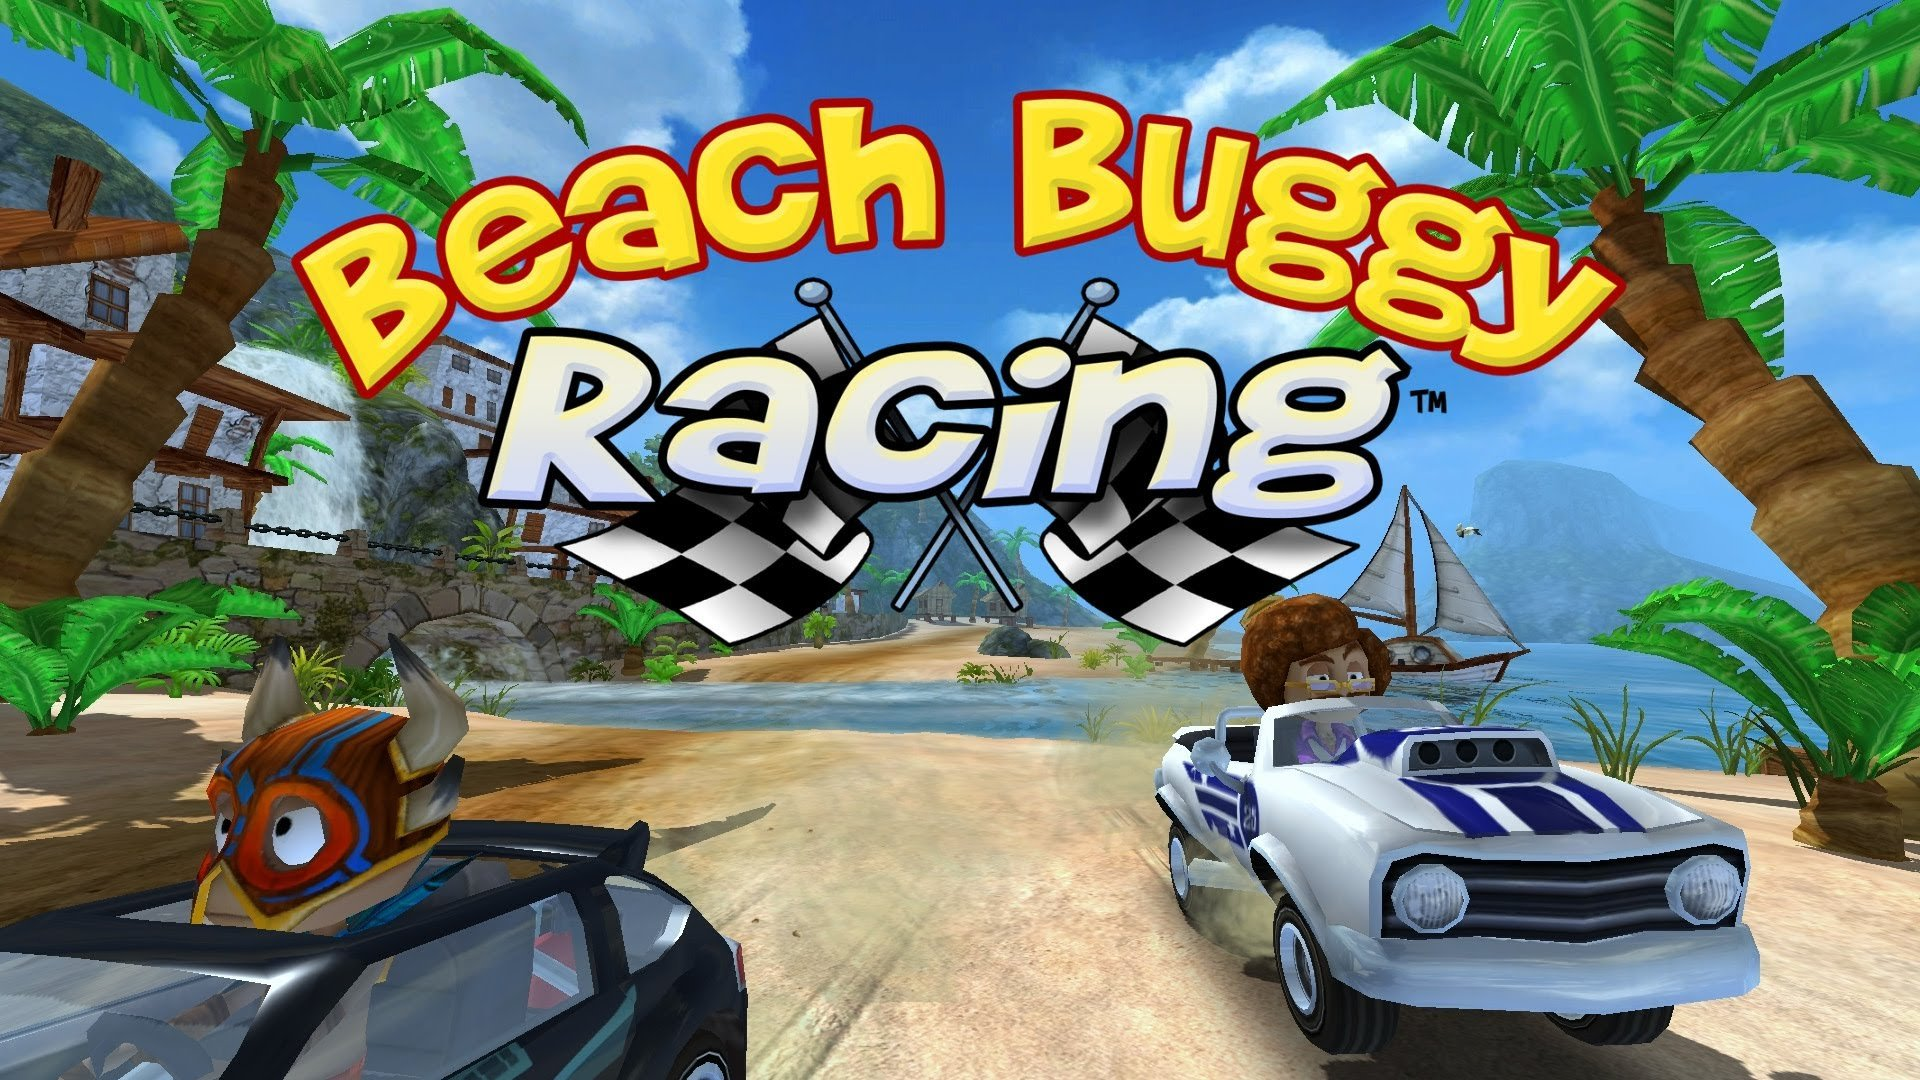 Мод для Beach Buggy Racing. Только Гонки!